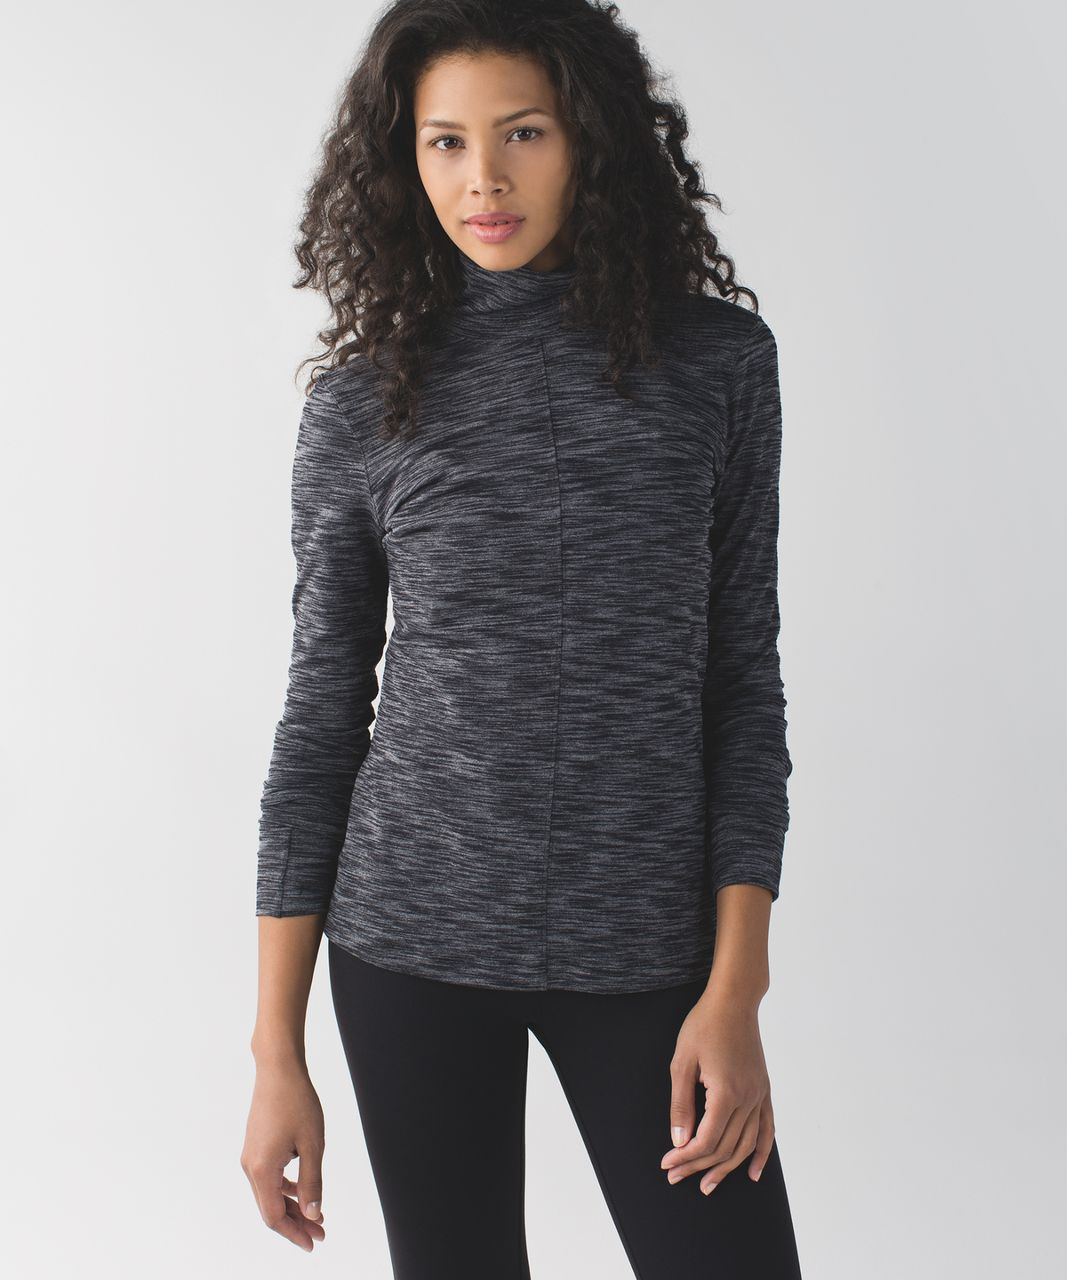 Lululemon &go Take-Off Long Sleeve - Heathered Black